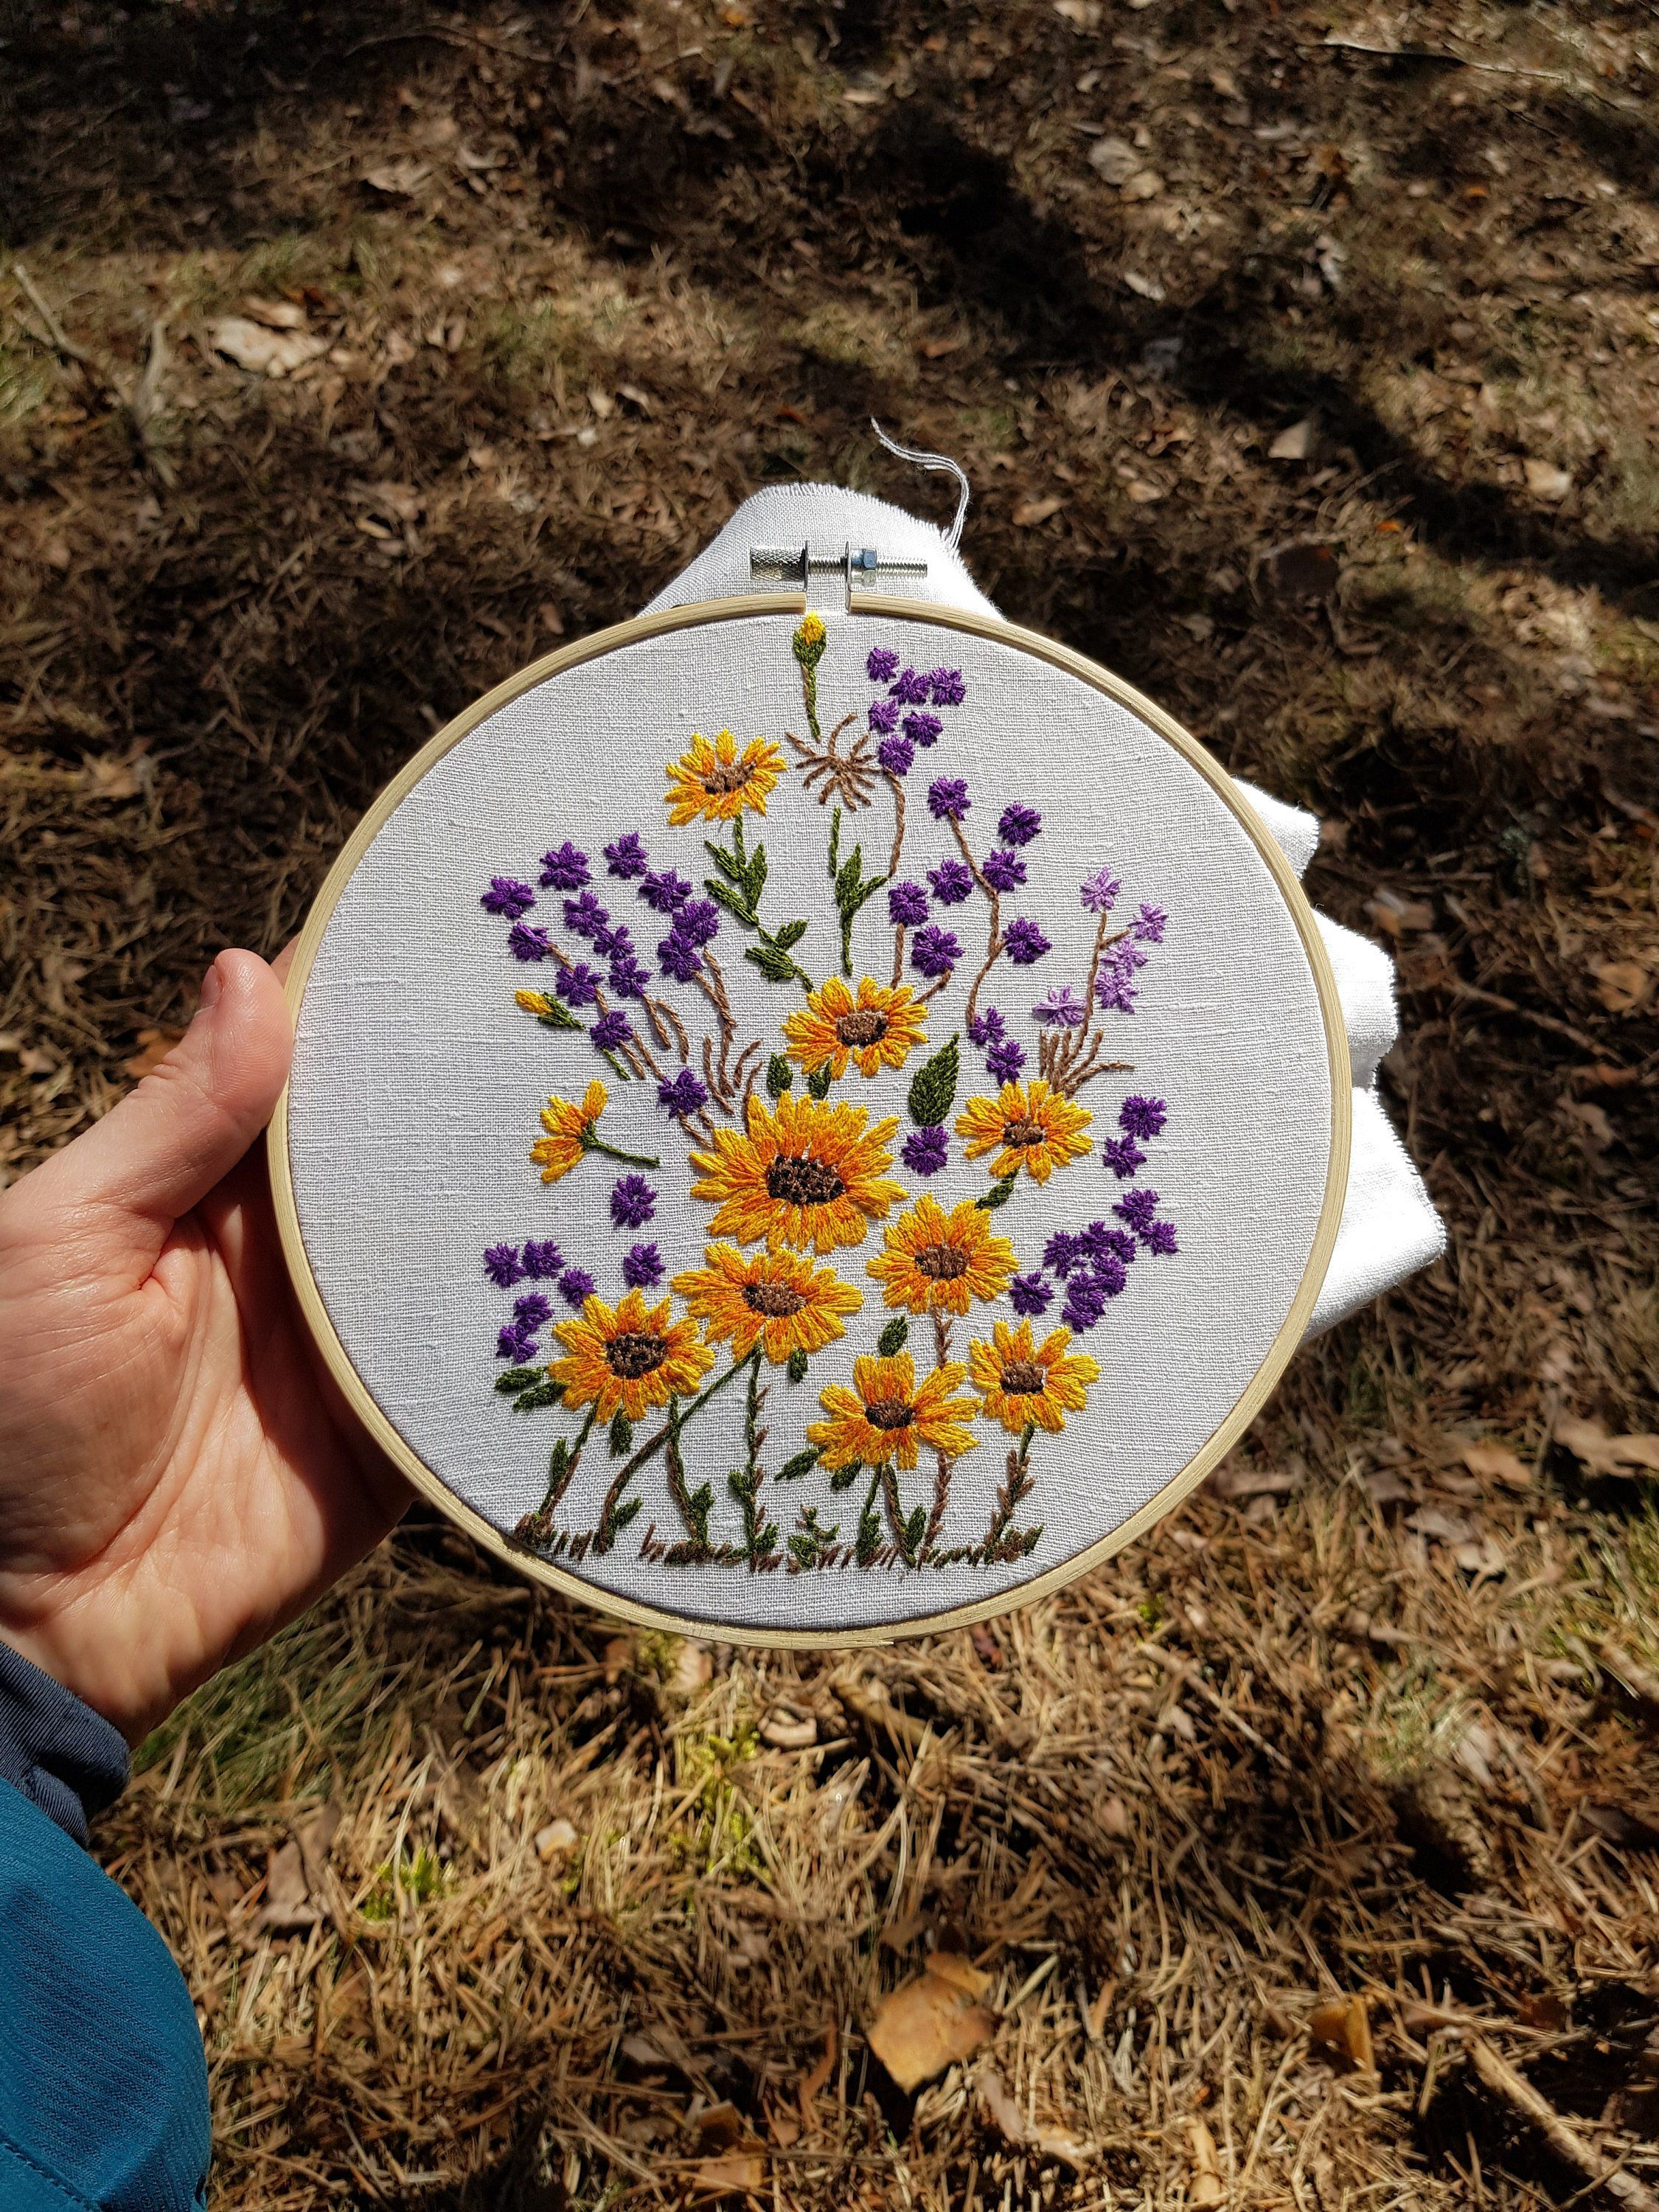 Wildflowers Embroidery Hoop Daisy Bouquet Yellow And Purple Floral Wall Art Embroidered Home D Purple Floral Wall Art Embroidery Hoop Embroidery Inspiration